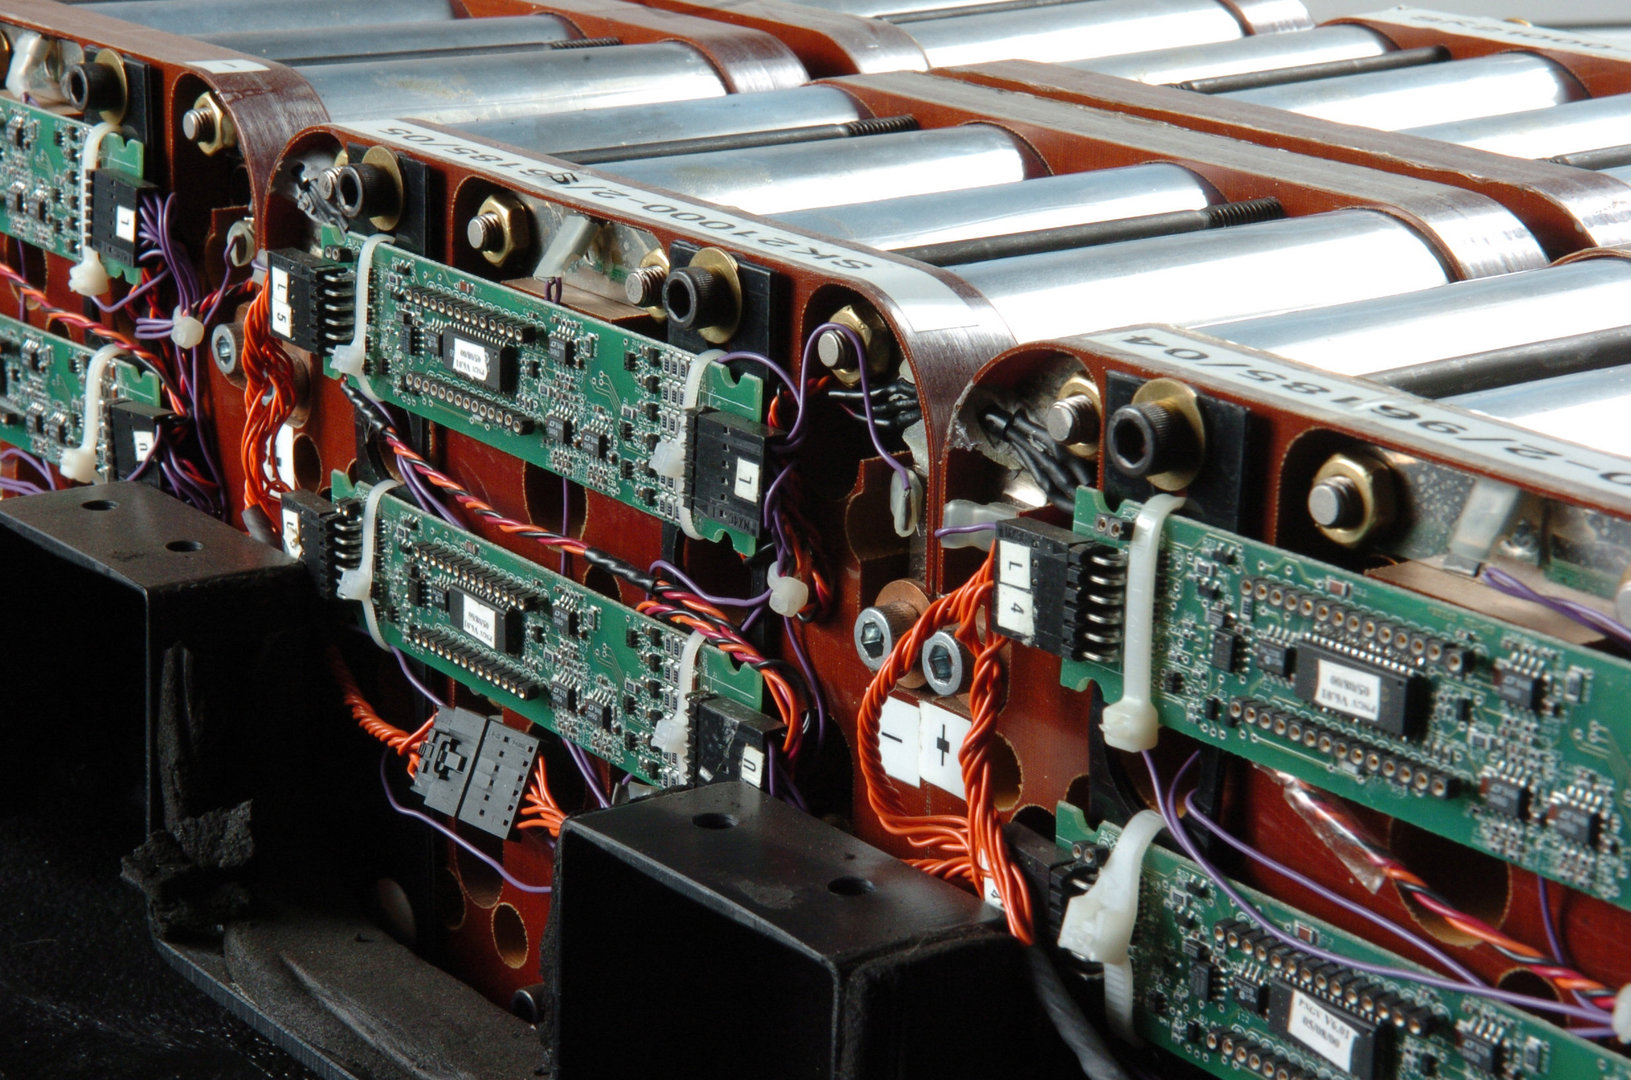 Nhtsa Warns About Lithium Battery Fire Risk